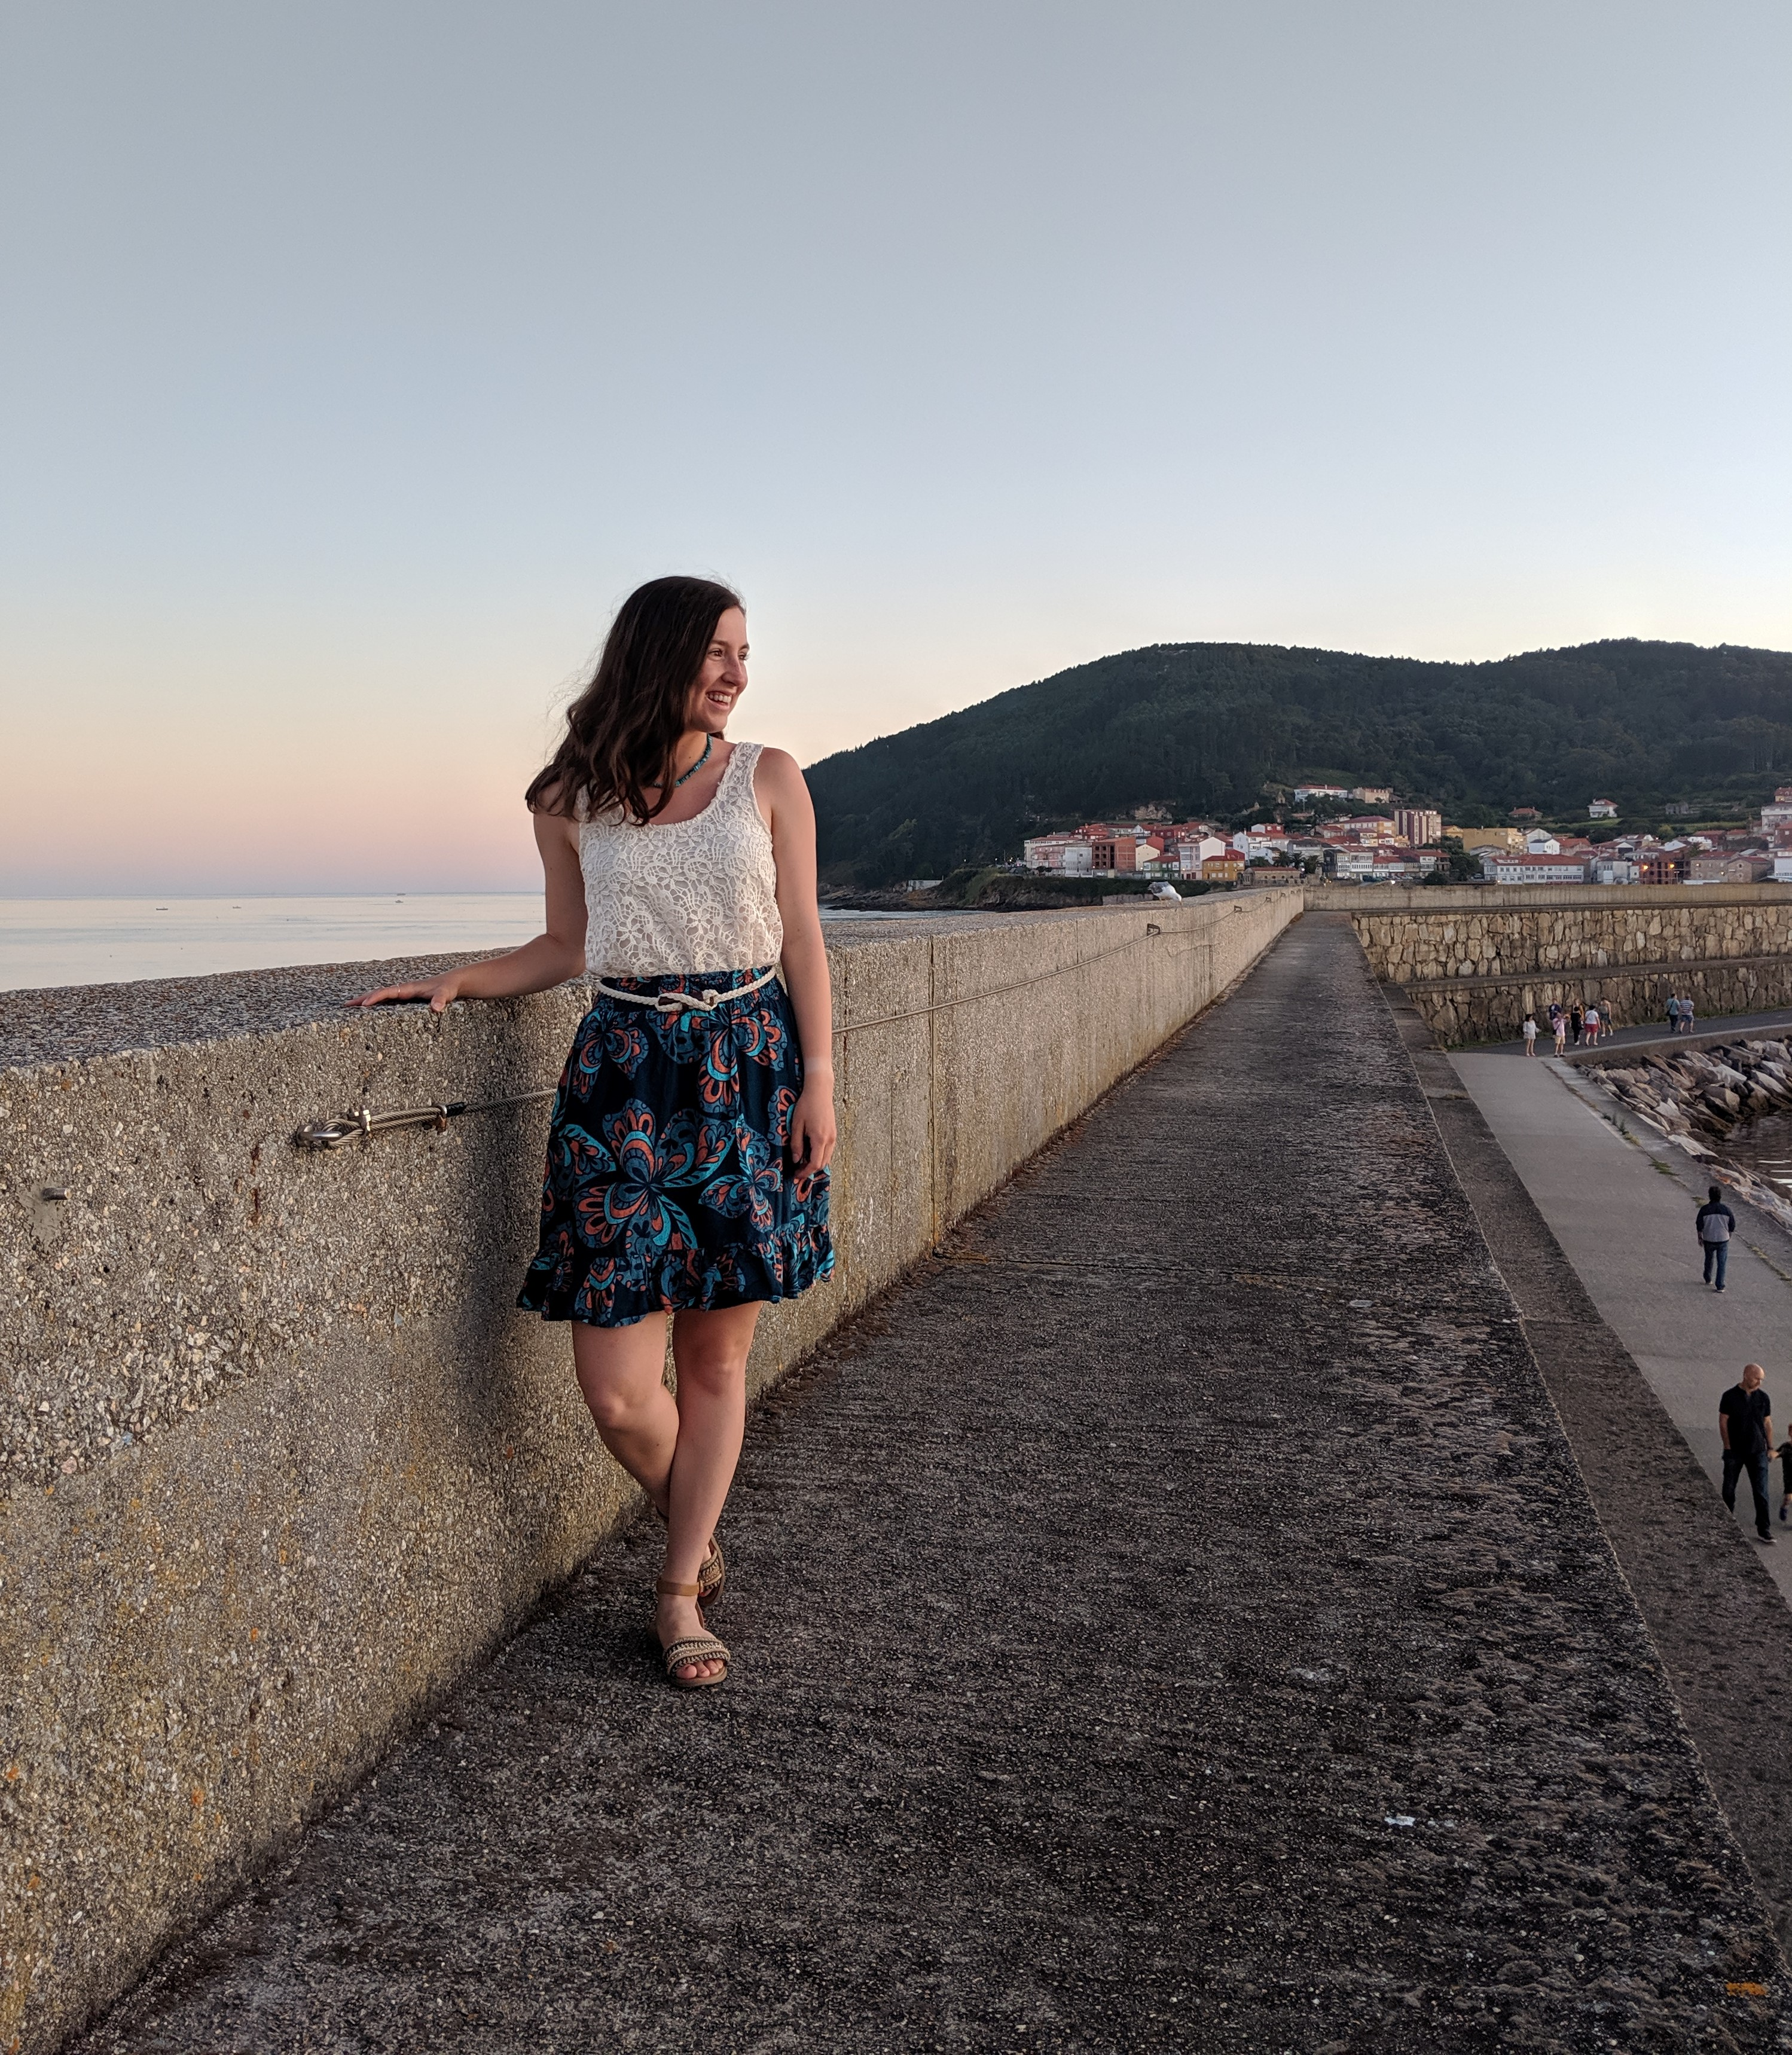 Finisterre, the end of the world, crochet top, patterned skirt, JCPenney, DSW shoes